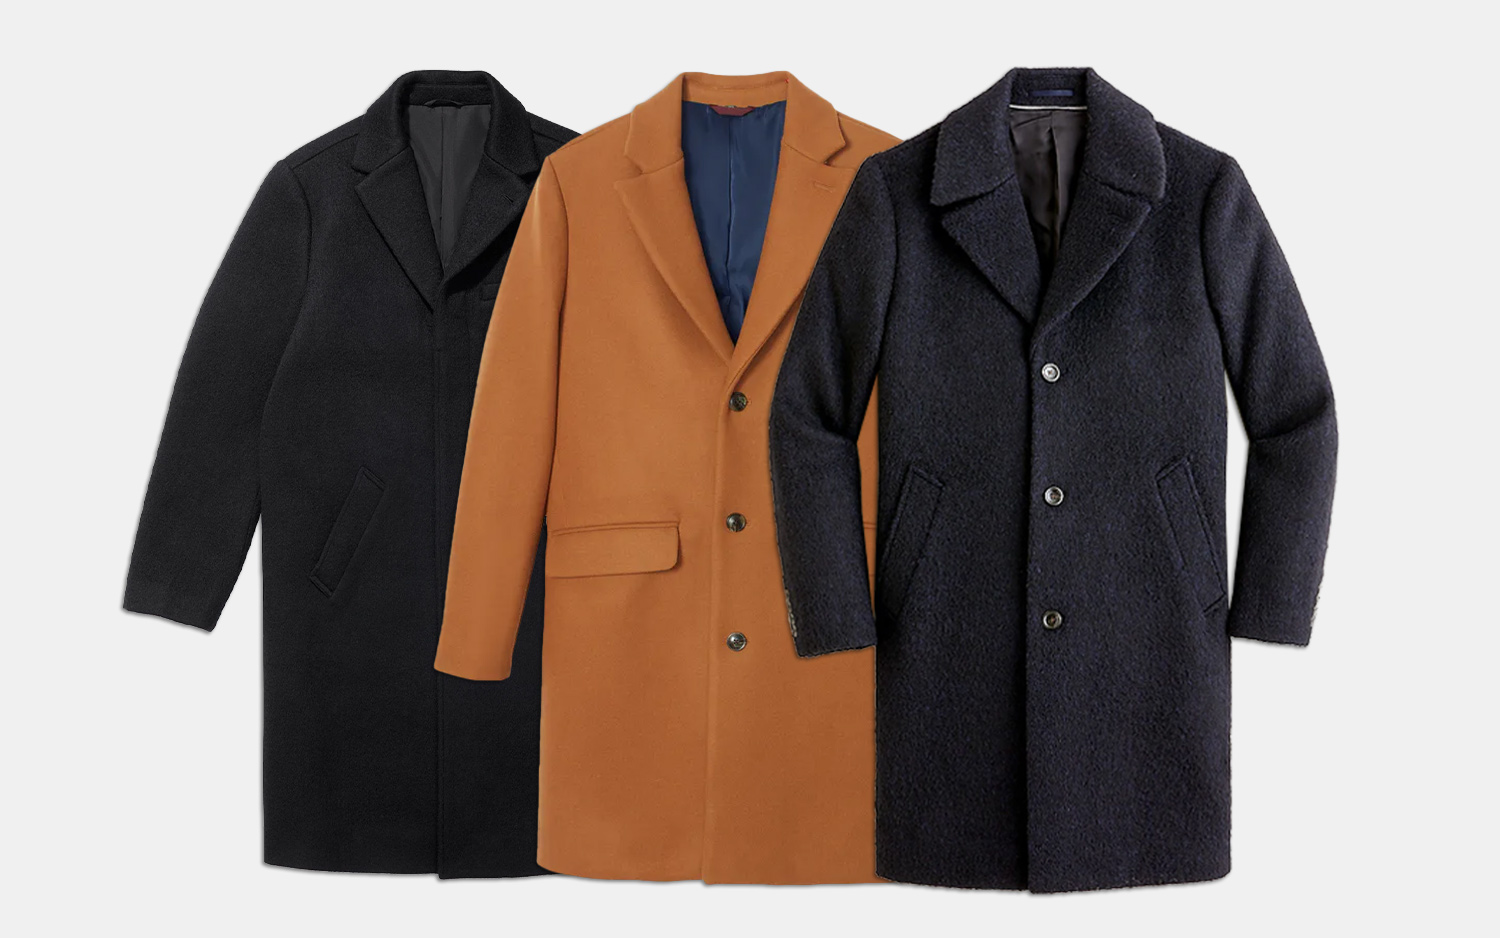 The 10 Best Men's Topcoats For Winter